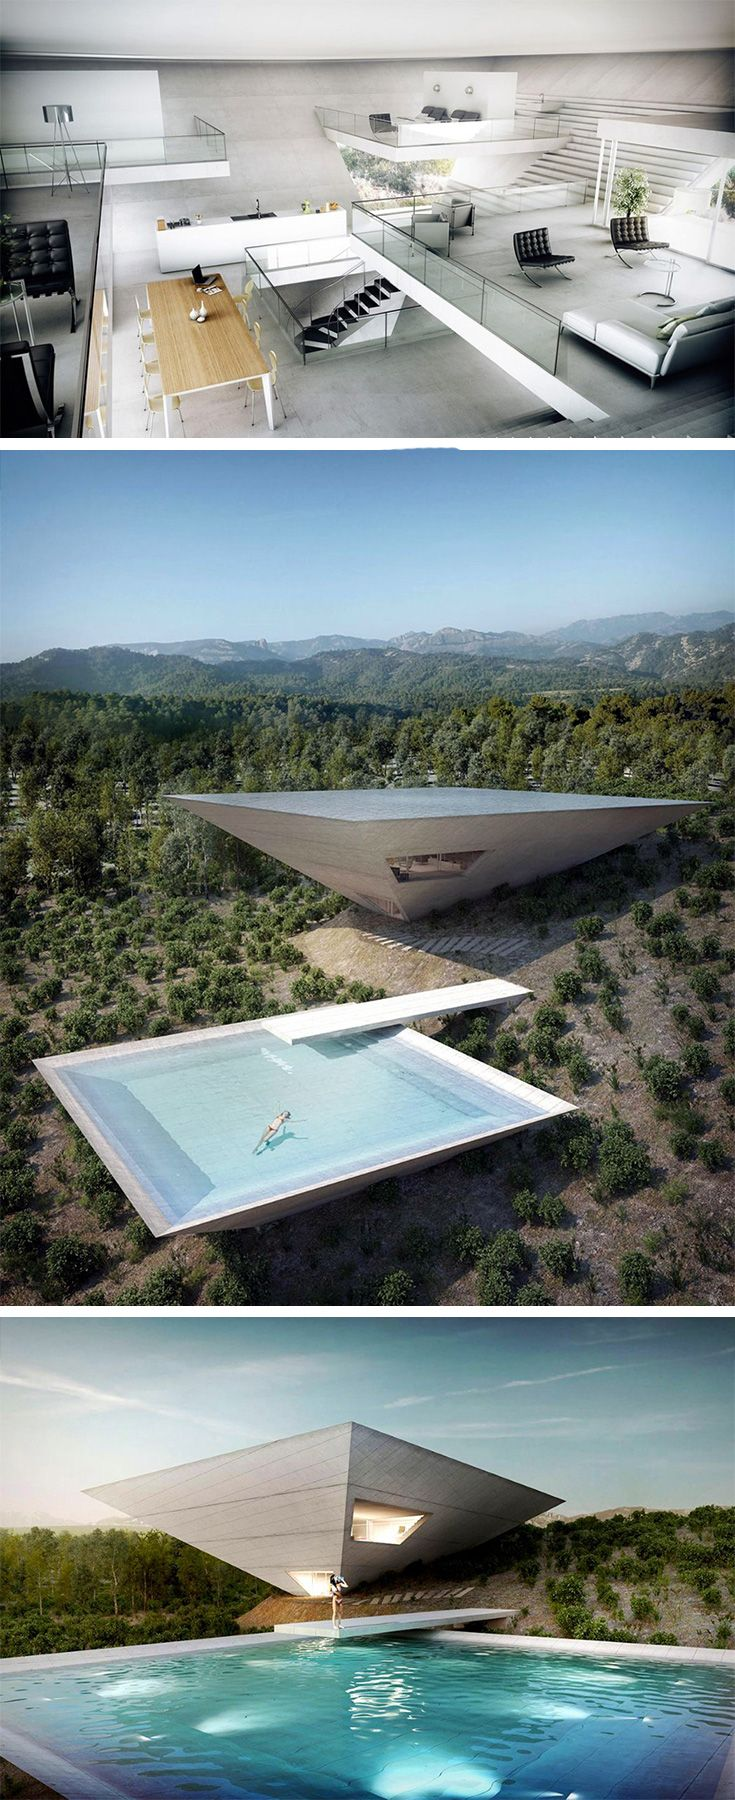 Crazy on the outside, yet classy on the inside, the Solo House project by TNA Architects for Matarrana, Spain. The inverted pyramid shaped house one of 12 such projects by French Developer Christian Bourdais who aims at capturing where the cutting edge of architecture stands at the beginning of the 21st century. The gravity defying structure stands out starkly against the otherwise downward sloping mountainous landscape.